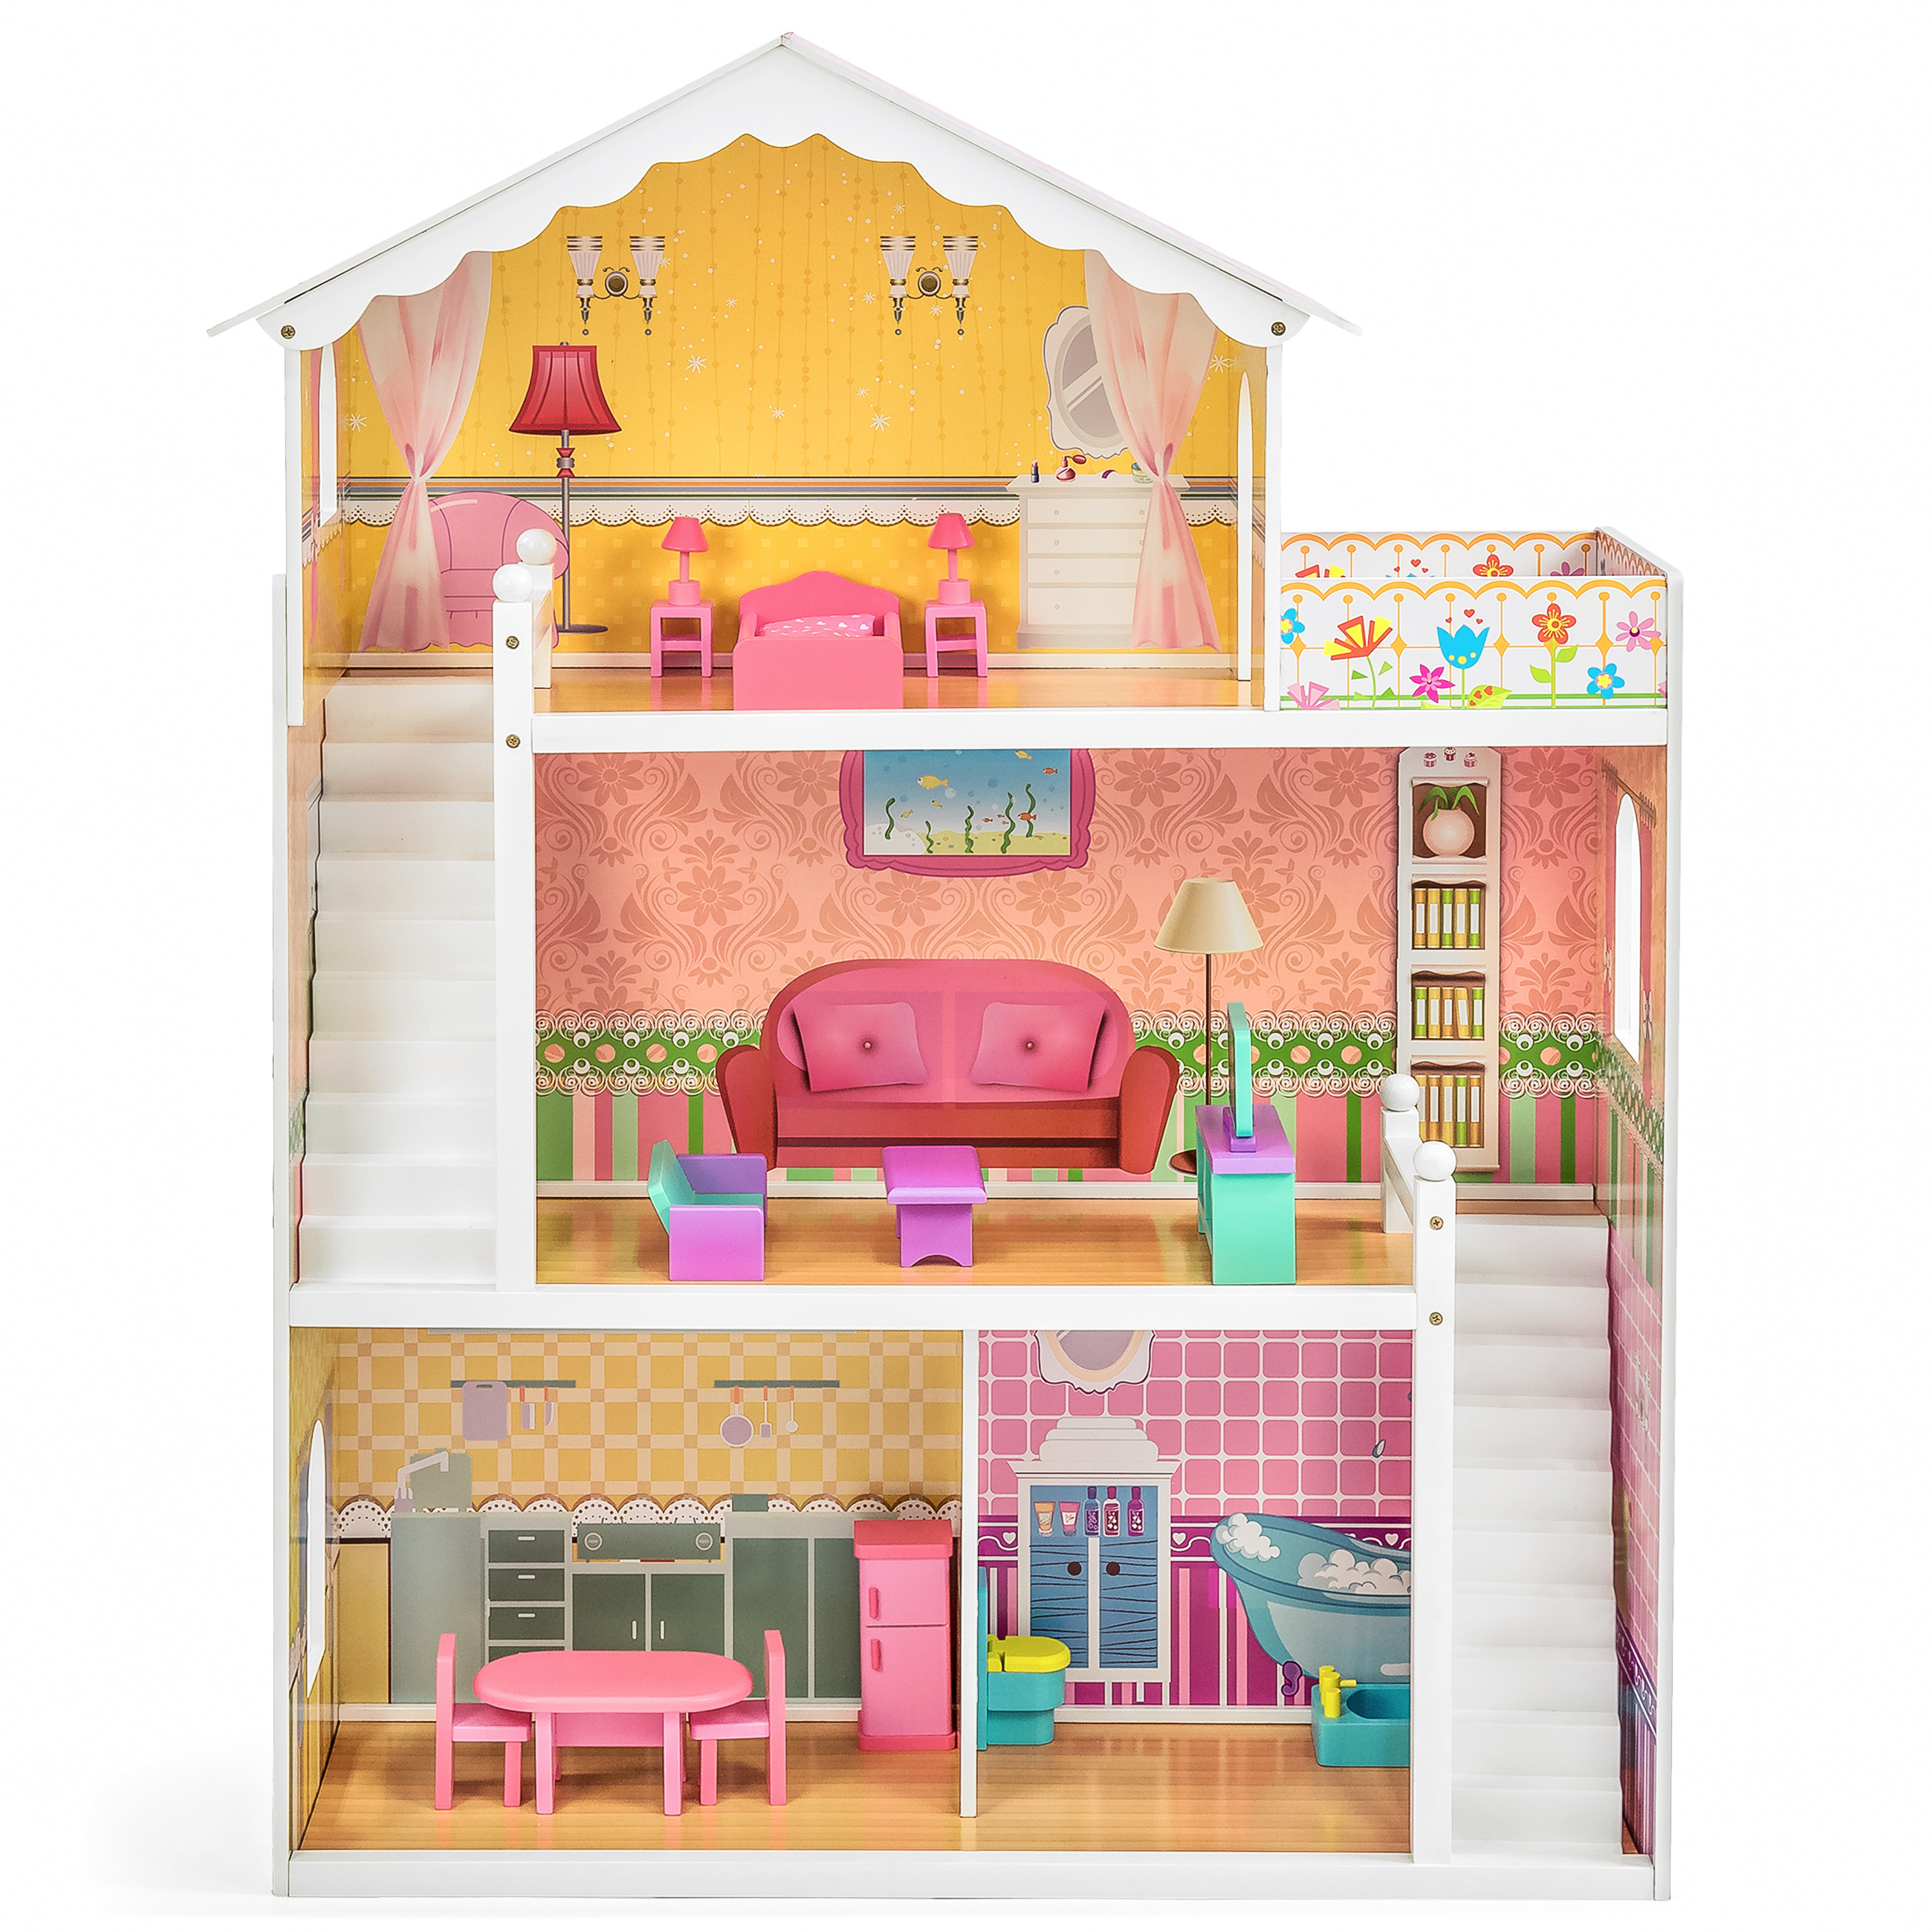 wooden barbie dollhouse furniture. Best Choice Products Large Childrens Wooden Dollhouse Fits Barbie Doll House Pink With 17 Pieces Of Furniture T